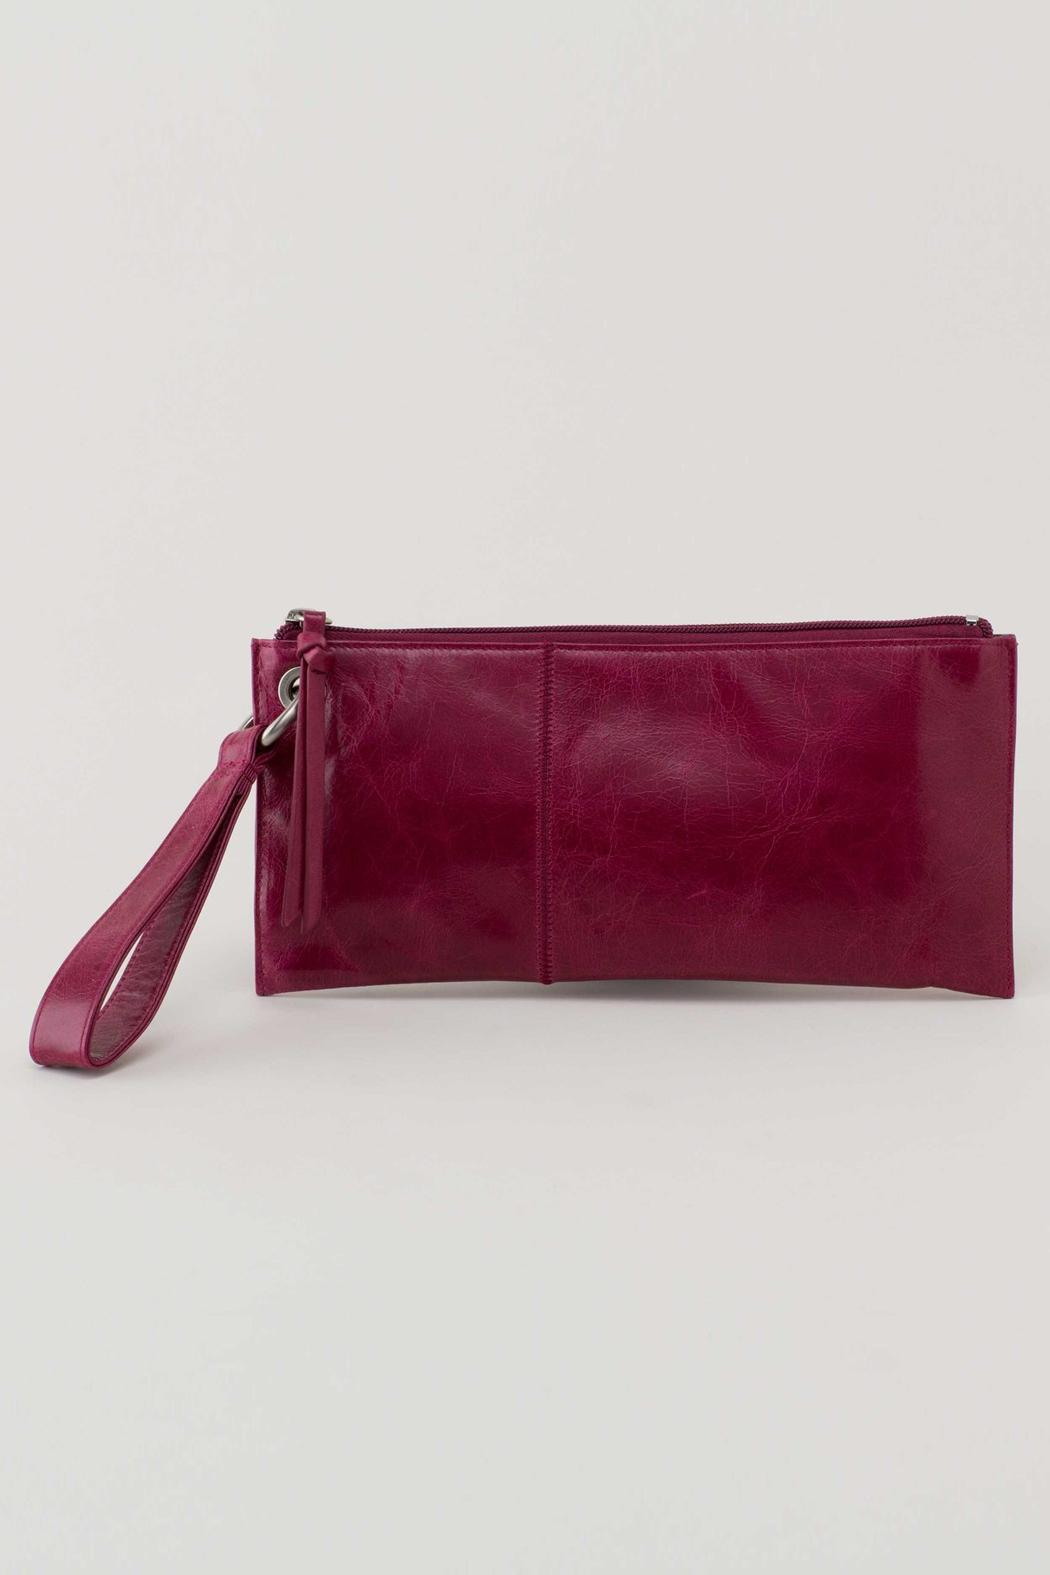 VIDA Statement Clutch - Show by VIDA XrM57zfWlV